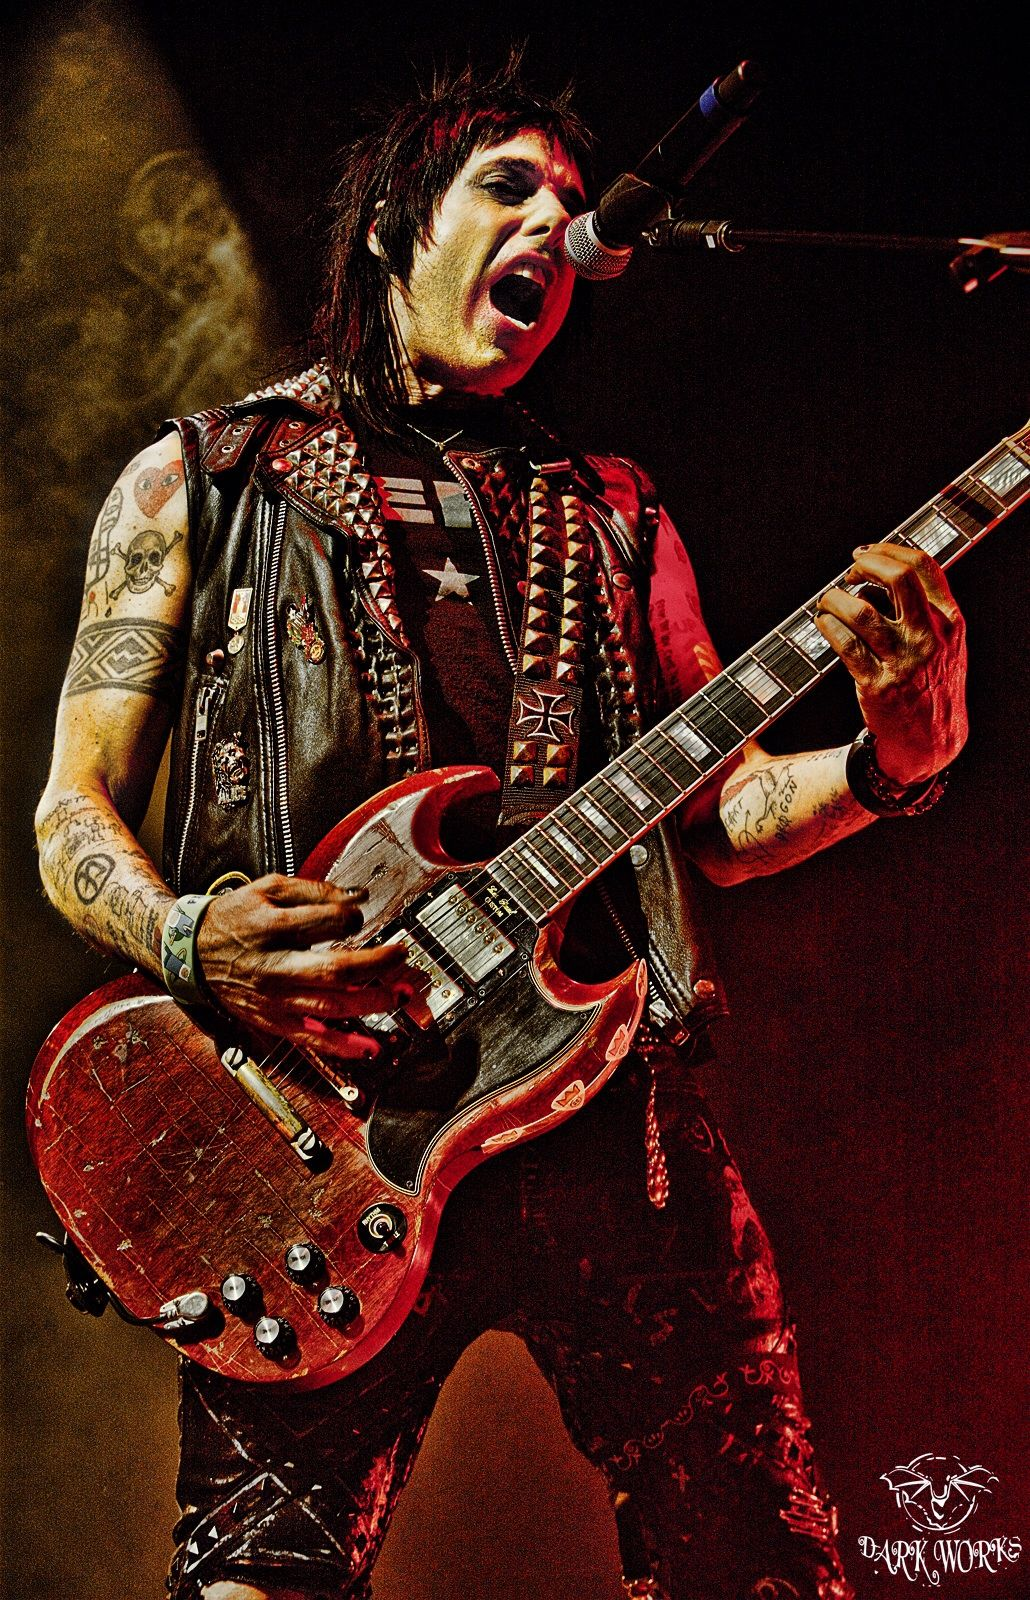 liza graves wow here we have mr tommy disvicious1 henriksen currently playing guitar for alice cooper